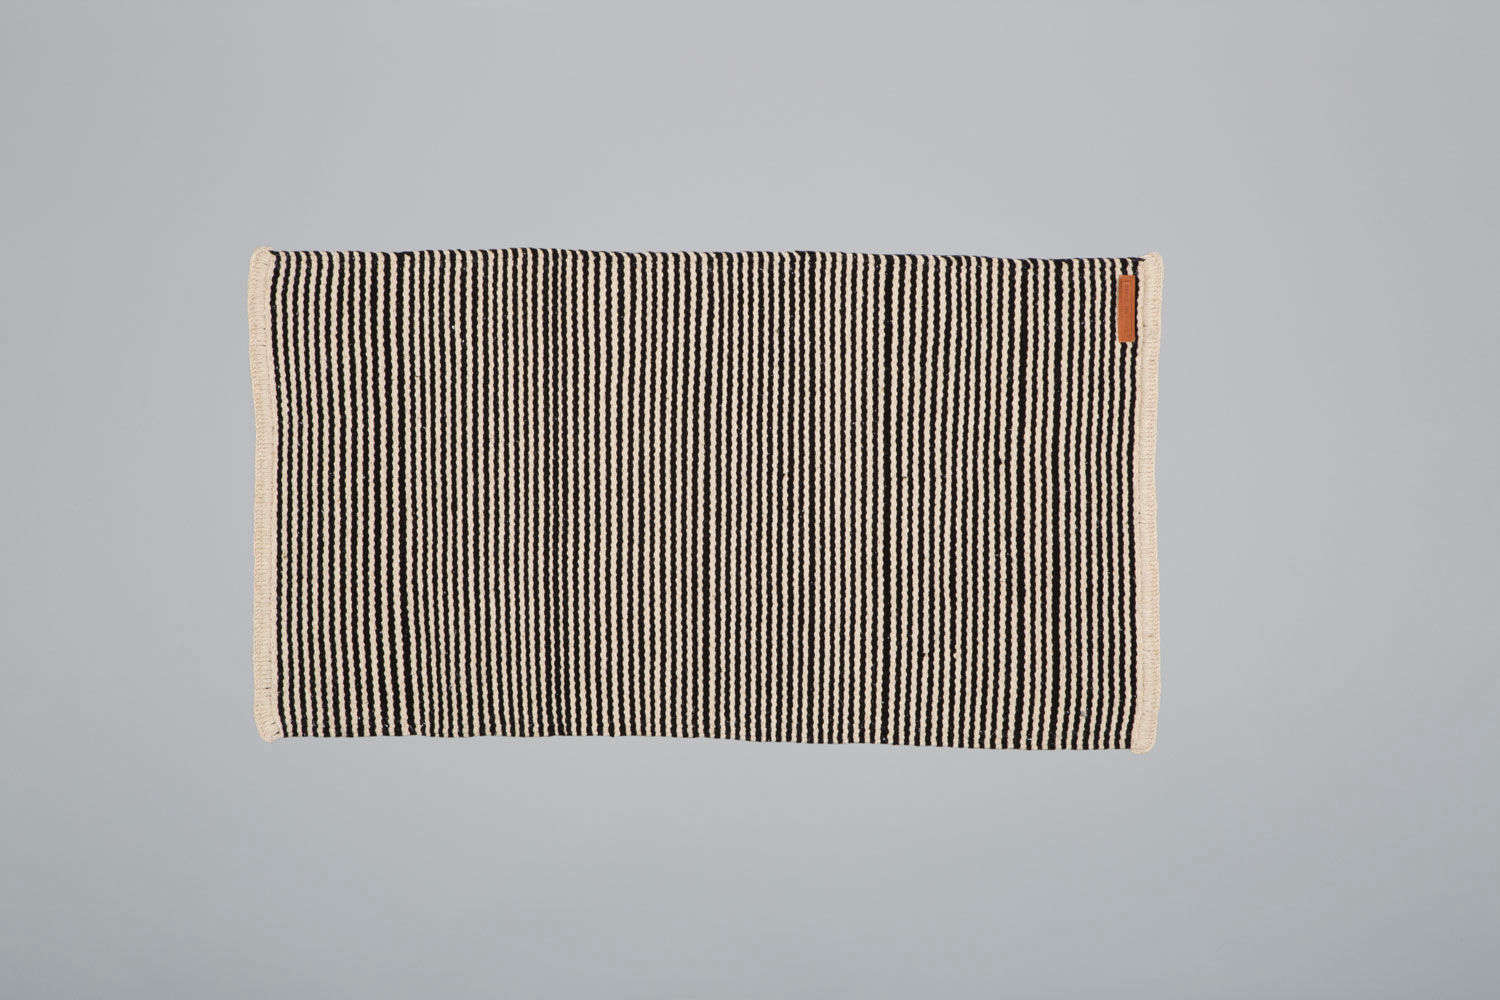 The new Breton Rug Small is a wool rug made up of black and cream stripes, like a Breton striped shirt.